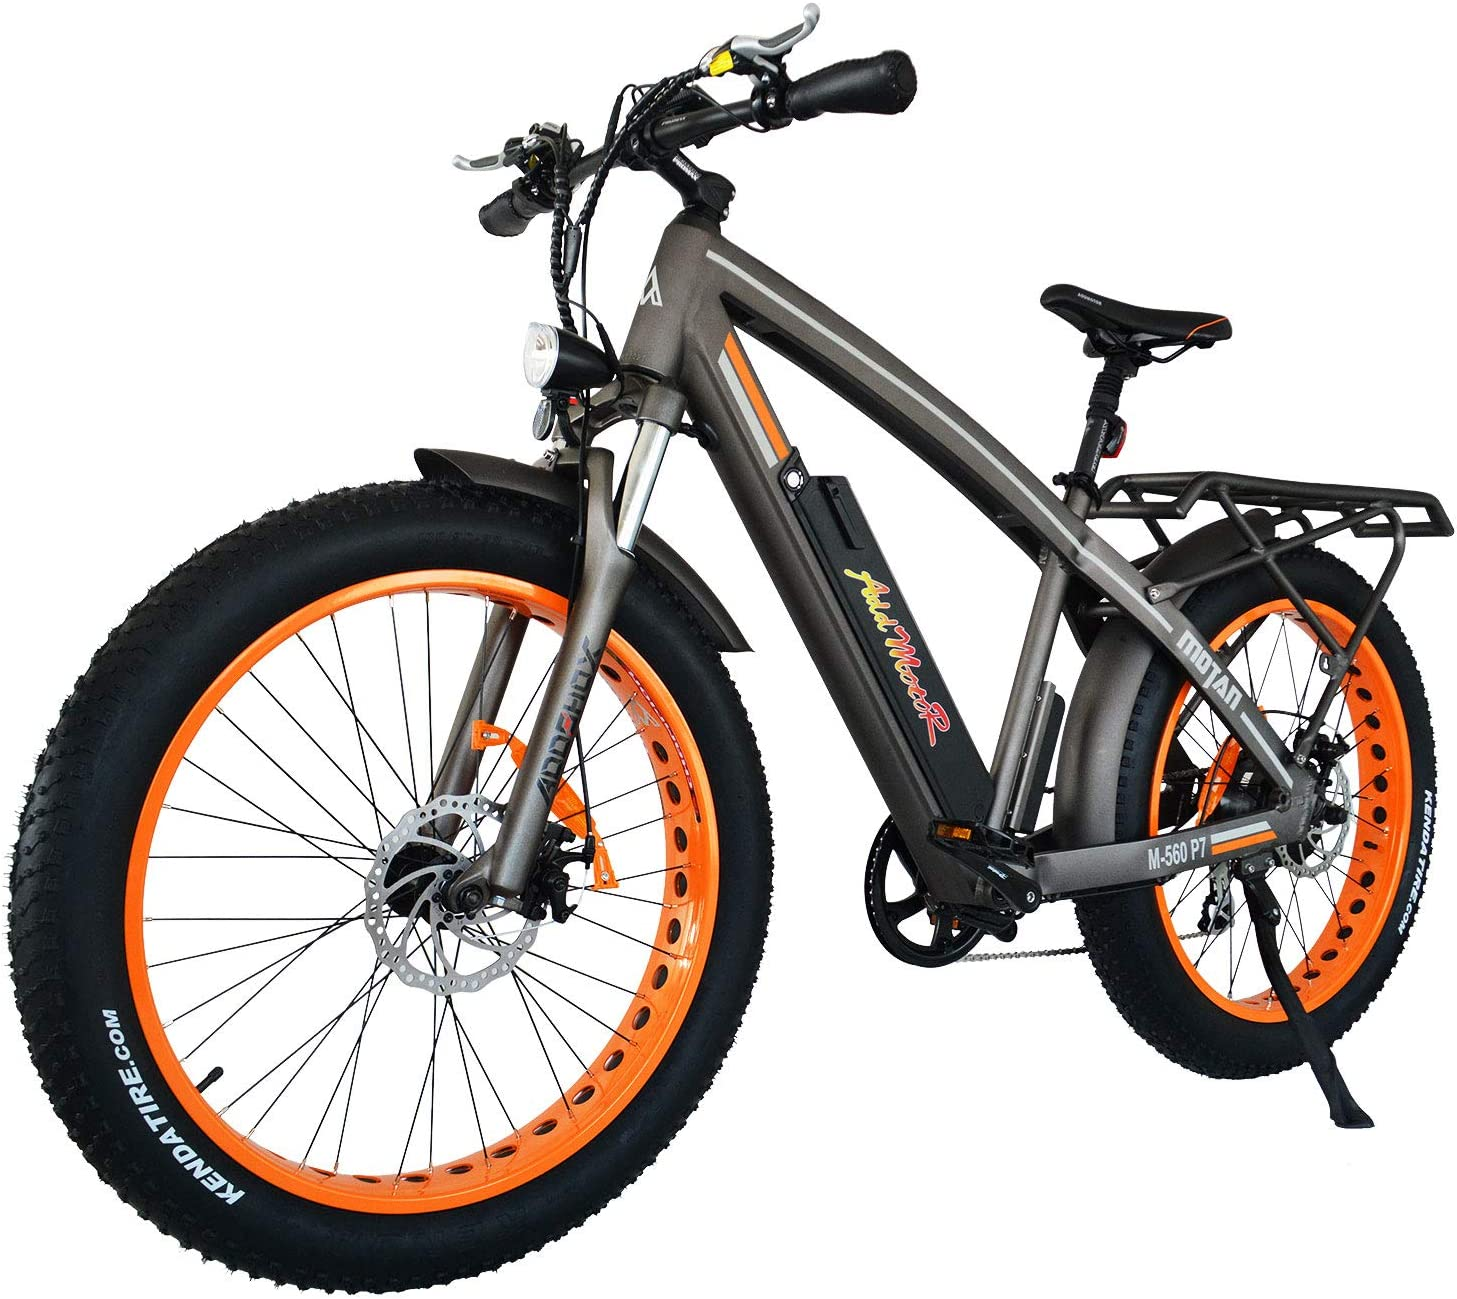 """Amazon.com : Addmotor MOTAN Electric Bicycles Electric Mountain Bikes, 750W  48V 12.8AH Removable Battery, 26"""" Fat Tire M-560 P7 E-Bike Adults : Sports  & Outdoors"""